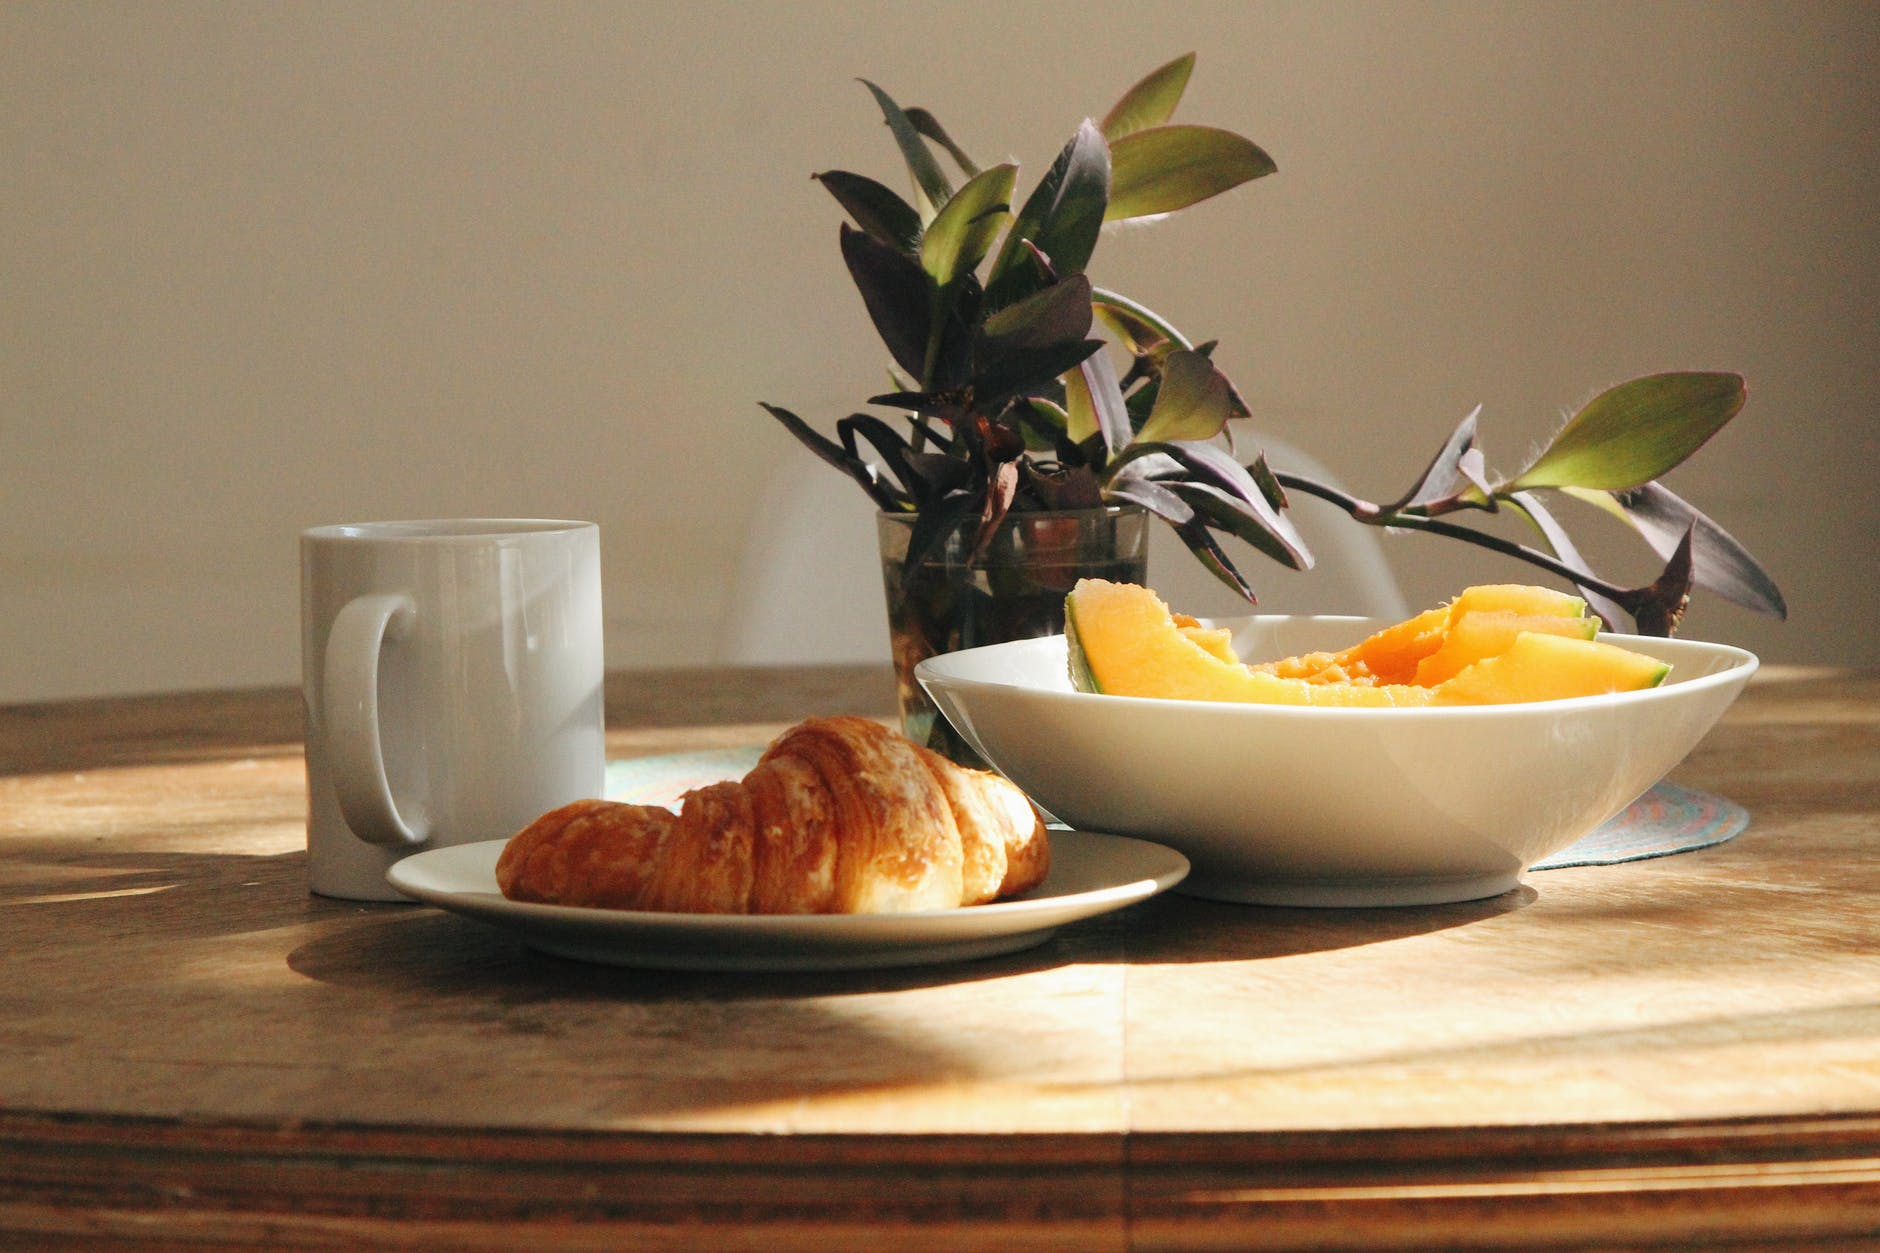 fresh fruit and croissant on wooden table